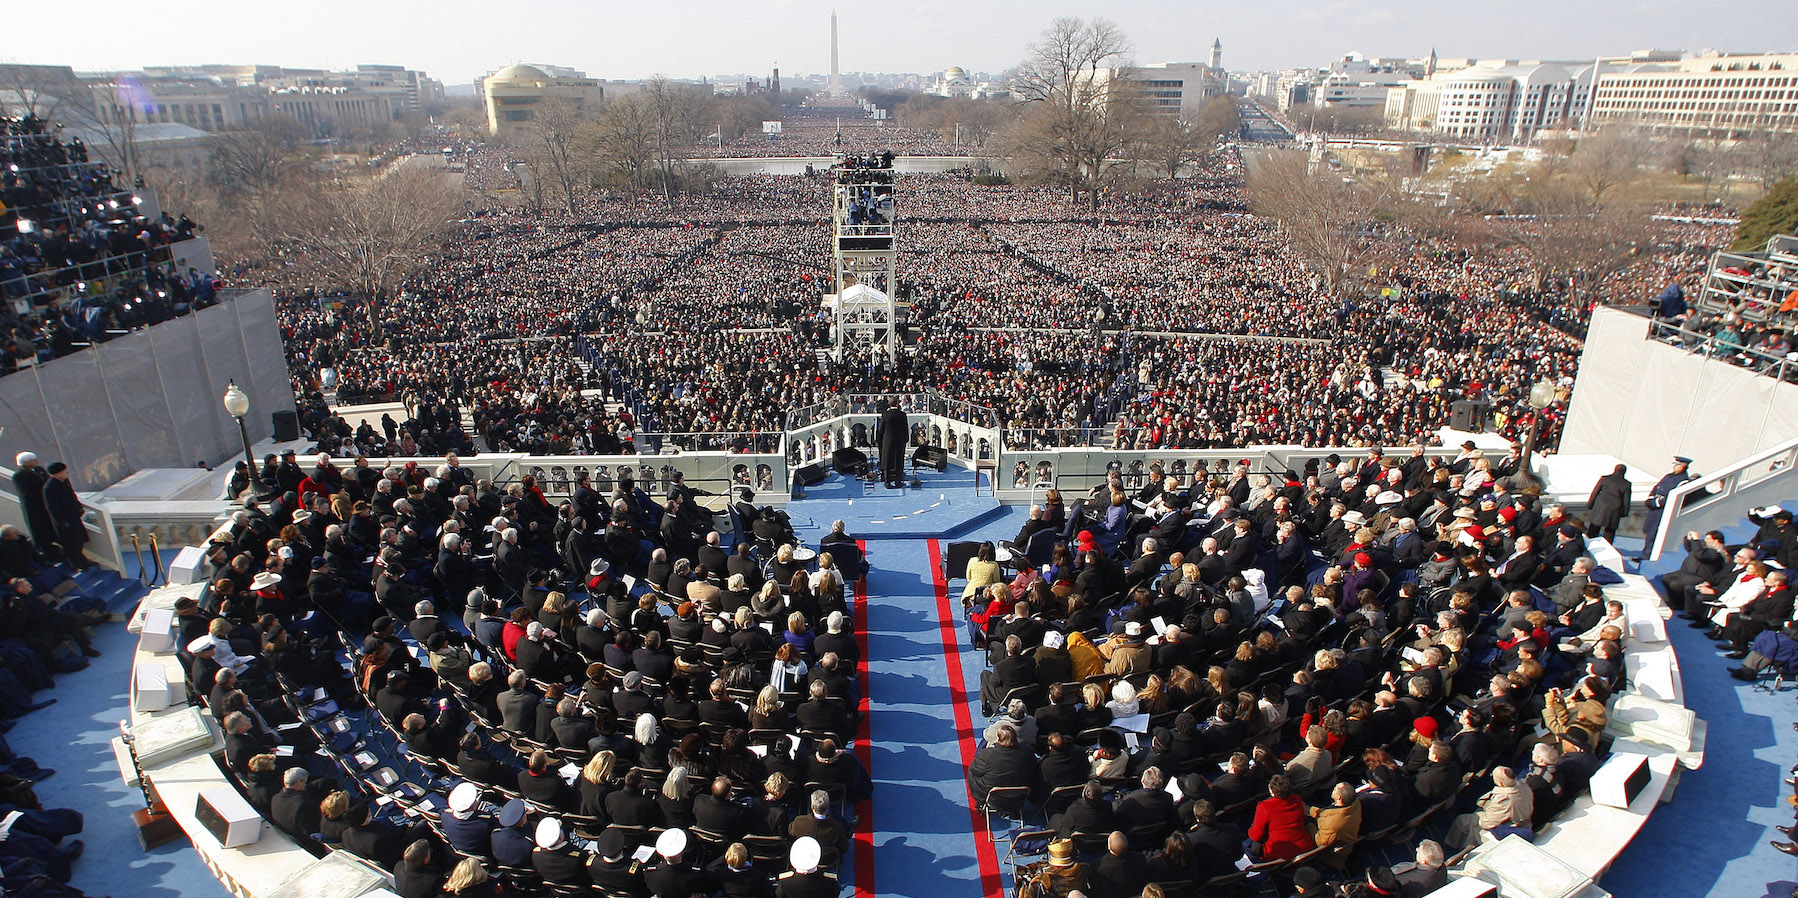 U.S President Barack Obama  (C) addresses the crowd after taking the Oath of Office as the 44th President of the United States during the inauguration ceremony in Washington, January 20, 2009.     REUTERS/Brian Snyder (UNITED STATES) - RTR23NHI